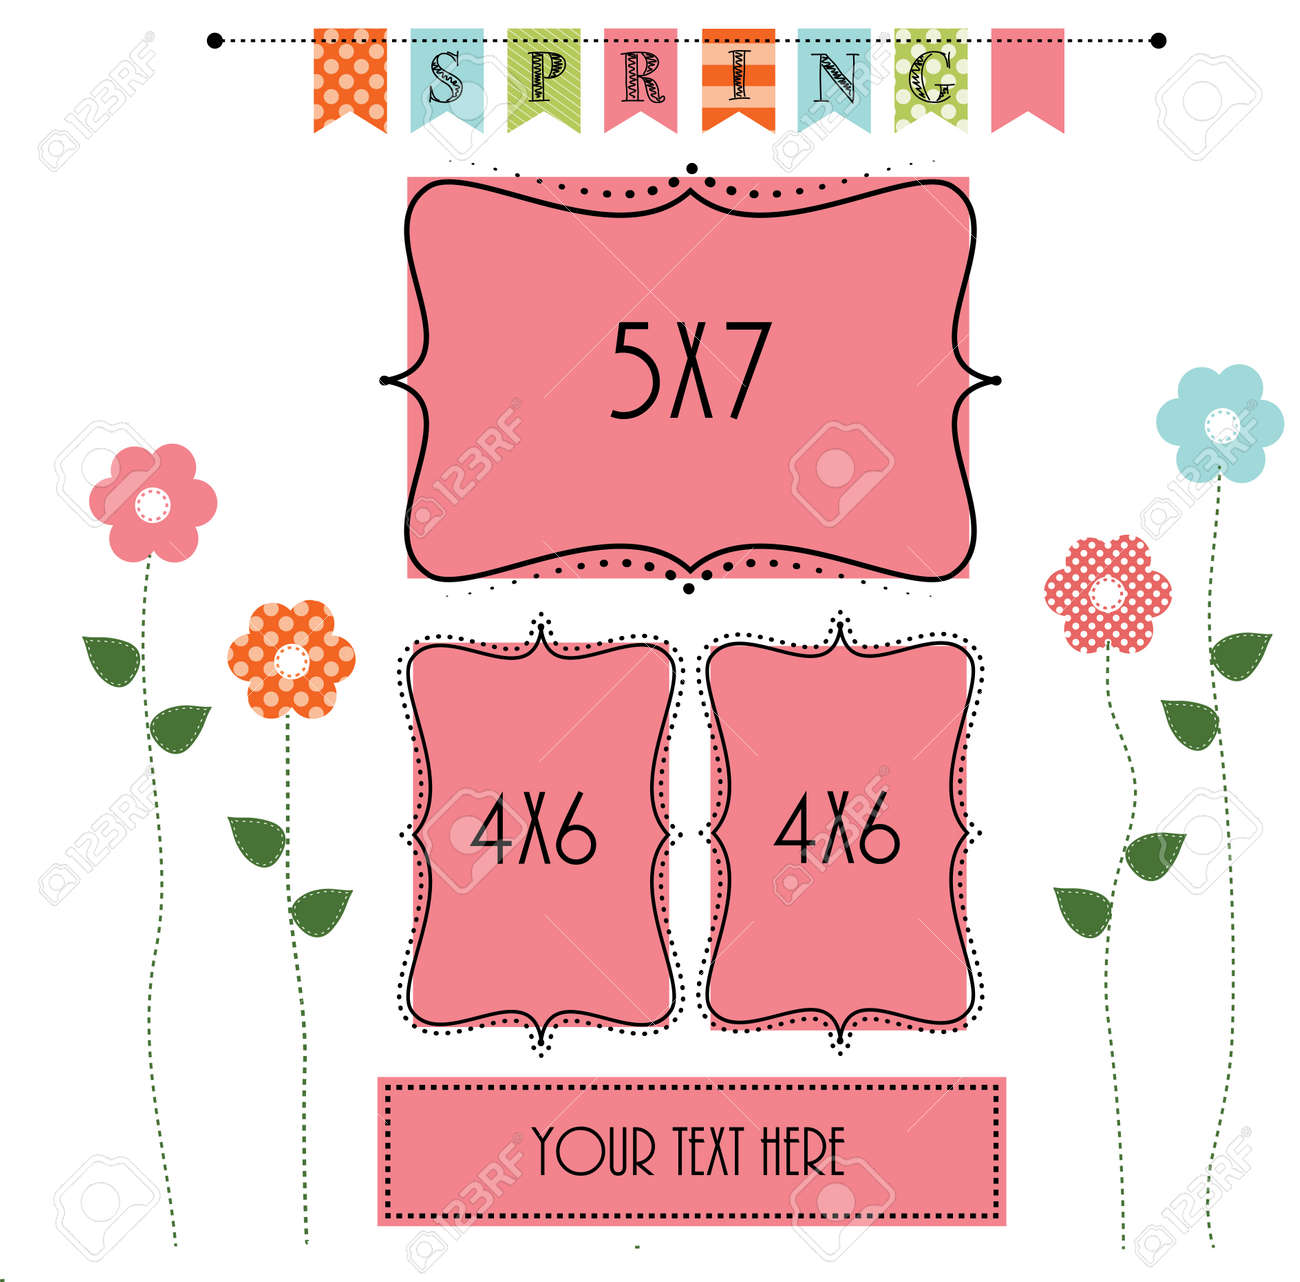 Easter Design Template With Two 4x6 And One 5x6 Frame For Your ...